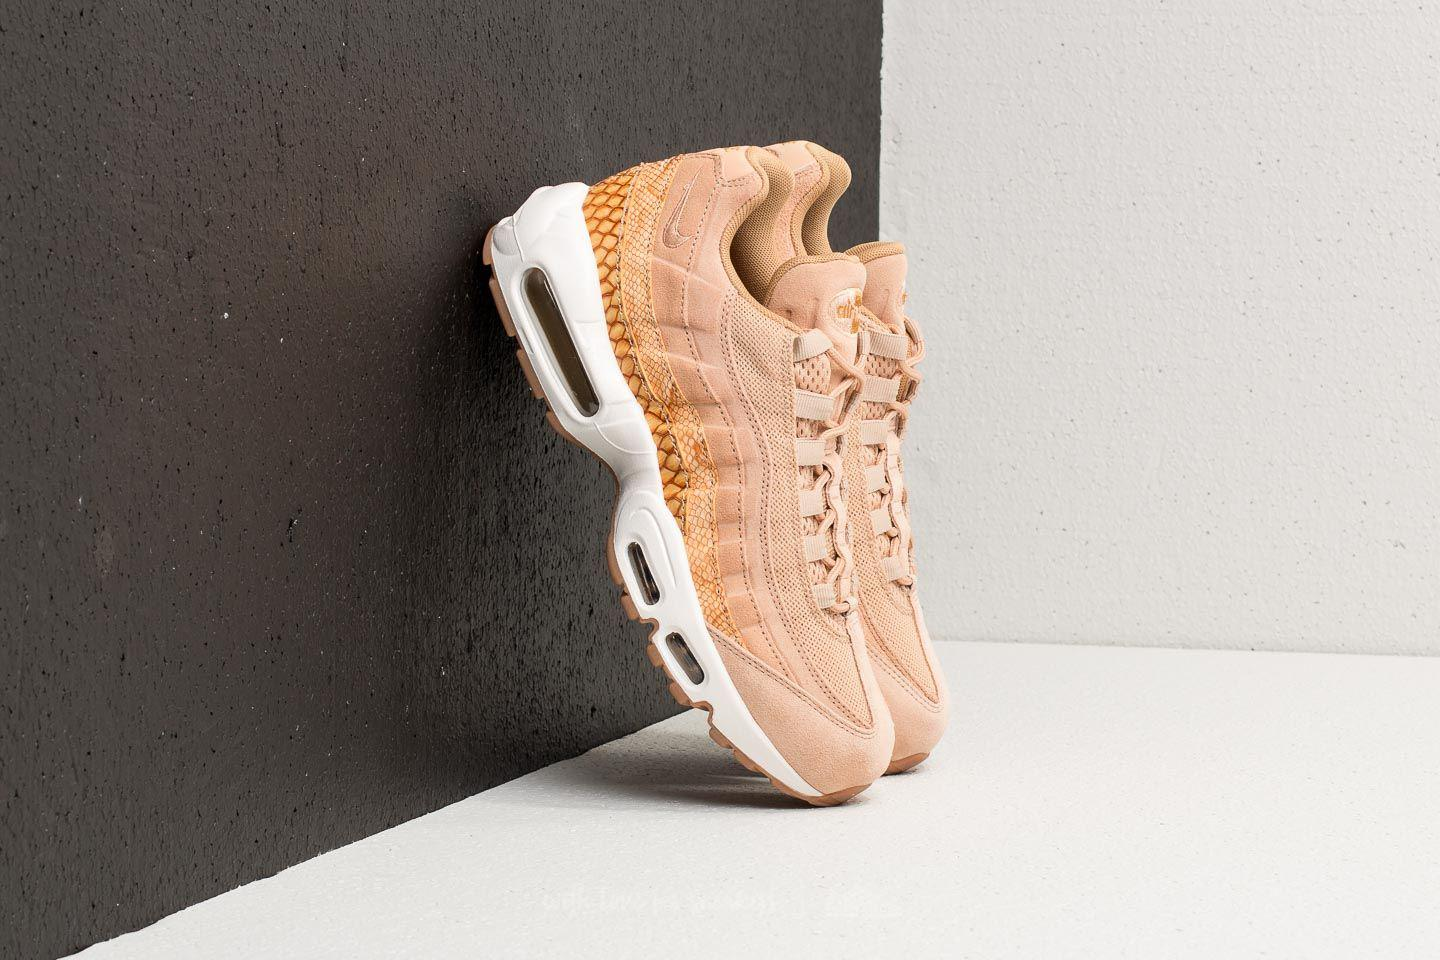 new products 6fe1f 65660 Nike Air Max 95 Premium Se Vachetta Tan  Vachetta Tan for Men - Lyst